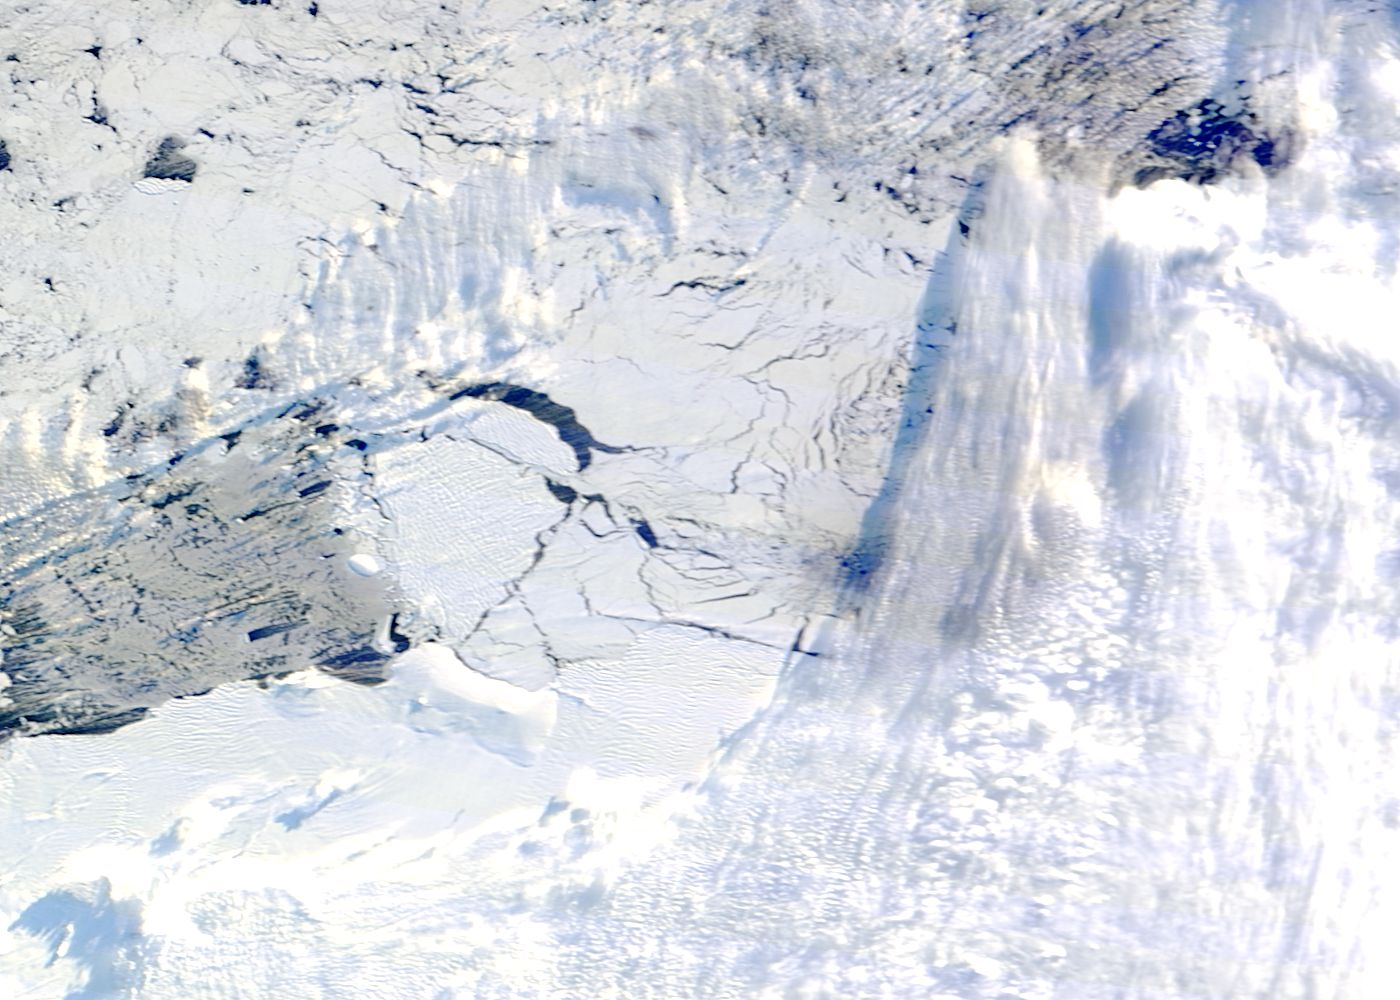 Iceberg B34 in the Amundsen Sea, Antarctica - related image preview